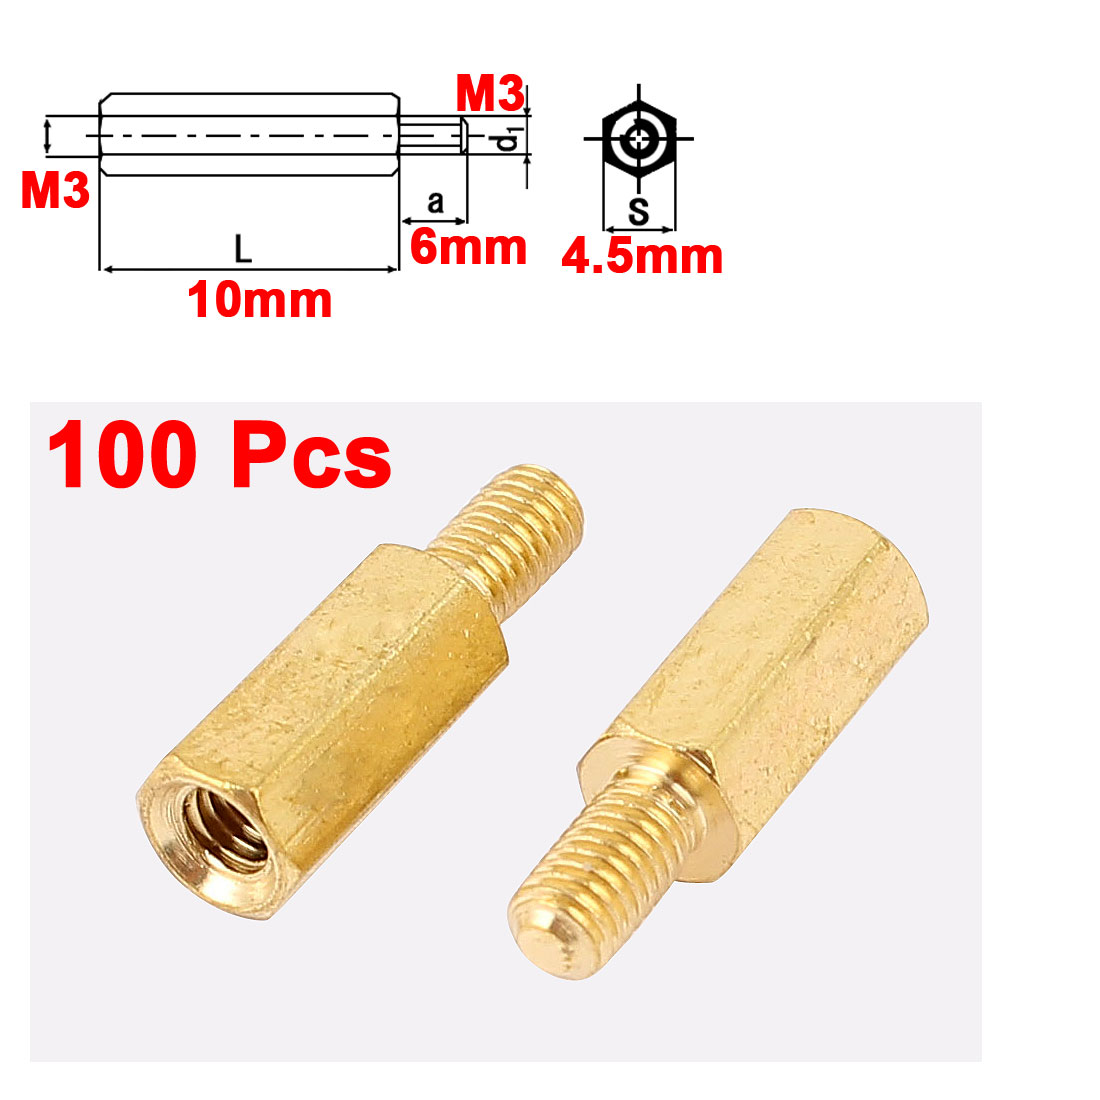 100Pcs M3 Male to Female 10mm+6mm Screw Threaded Brass Hex Standoff Spacer for PCB Motherboard